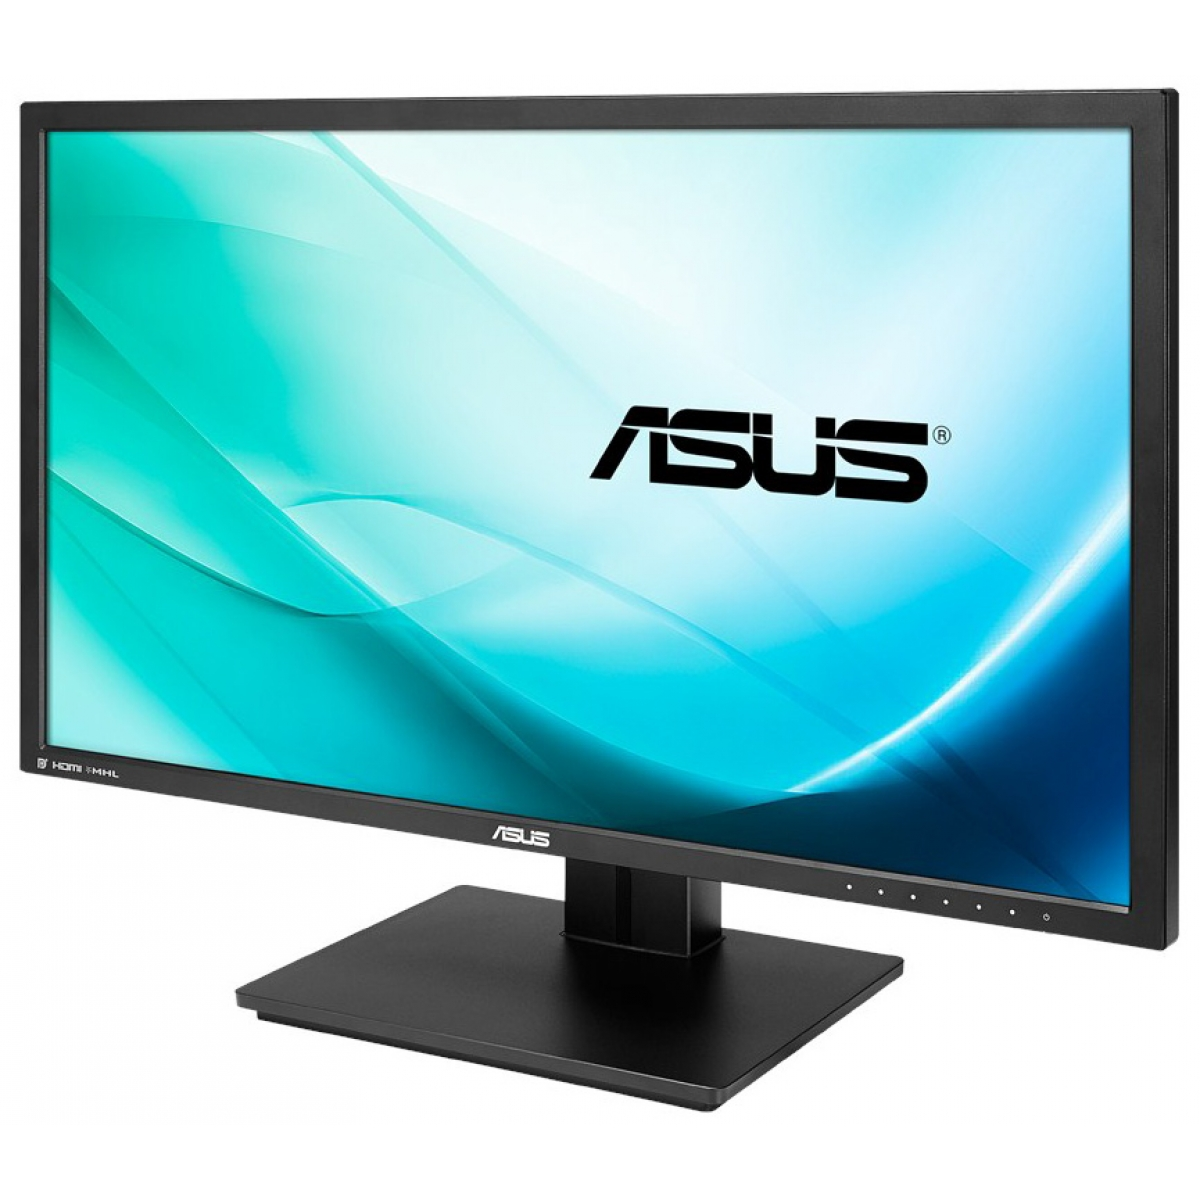 Monitor Gamer Asus 28 Pol, 4k Ultra HD, 1ms, PB287Q